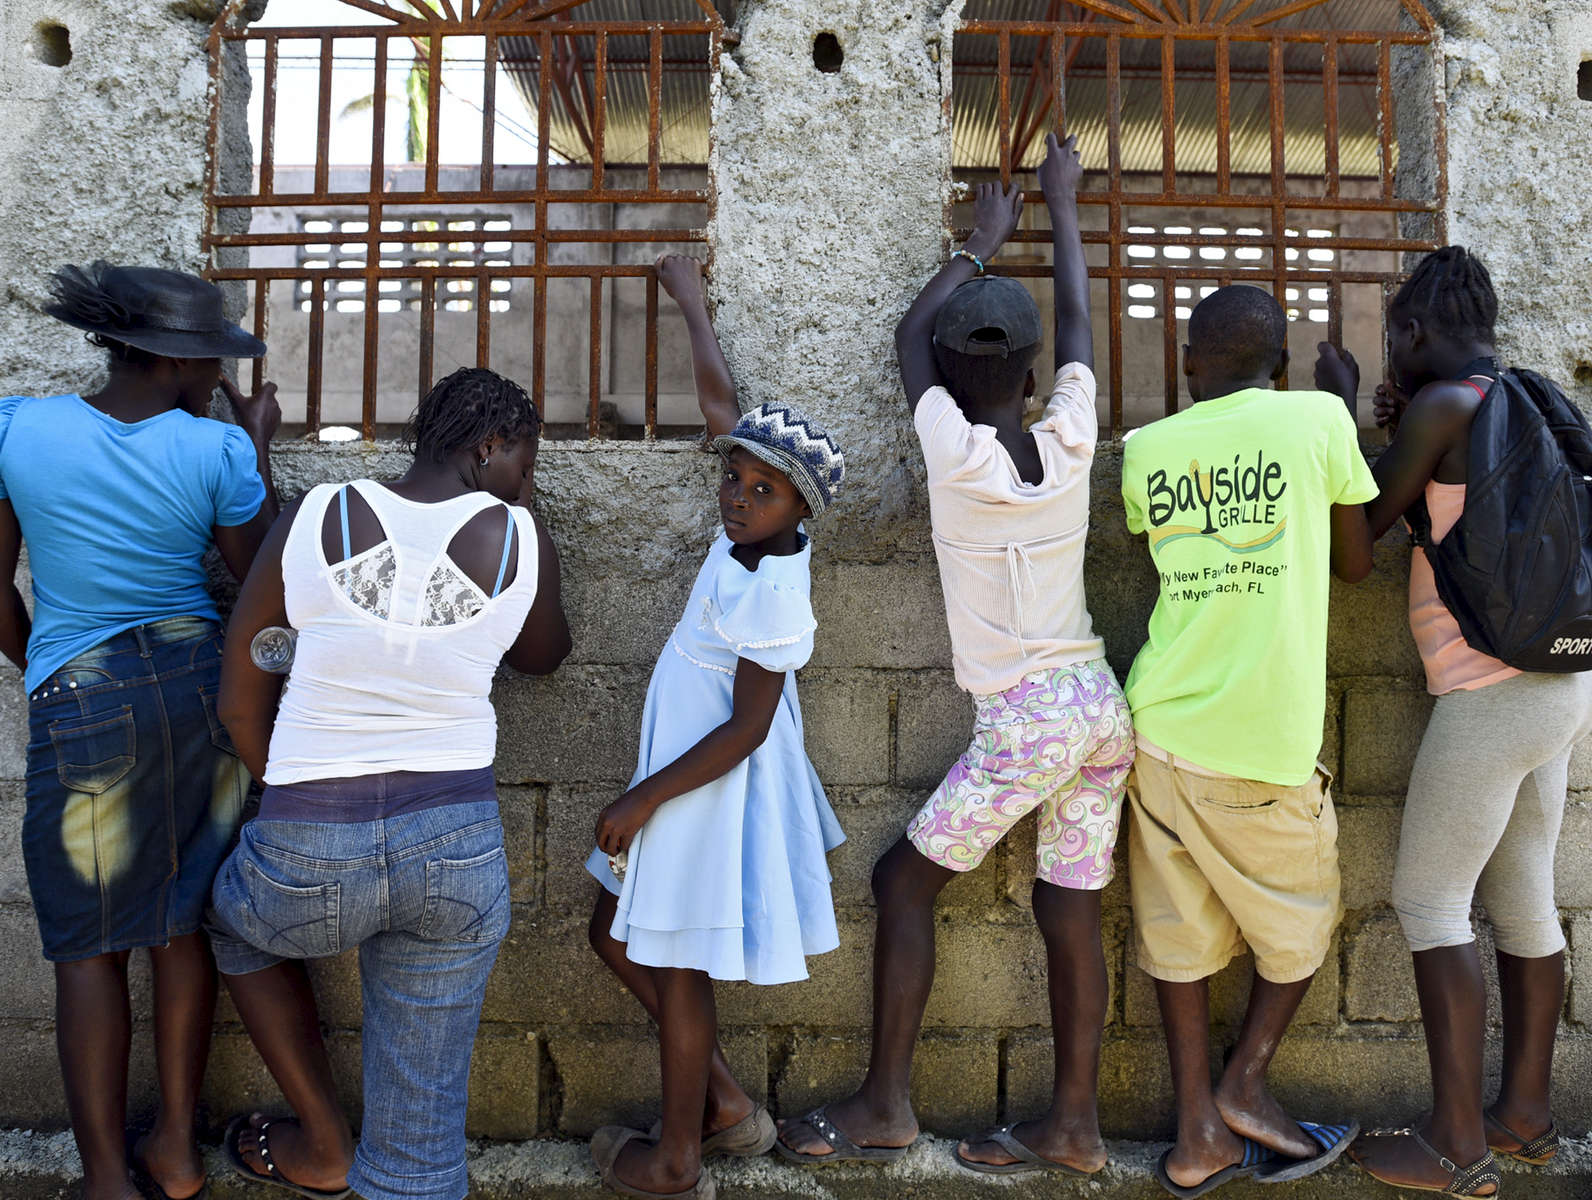 Children and adults peer through the windows of the Adventist Church waiting to be admitted to the Forward in Health clinic in Ducis, Haiti on Wednesday, November 2, 2016.